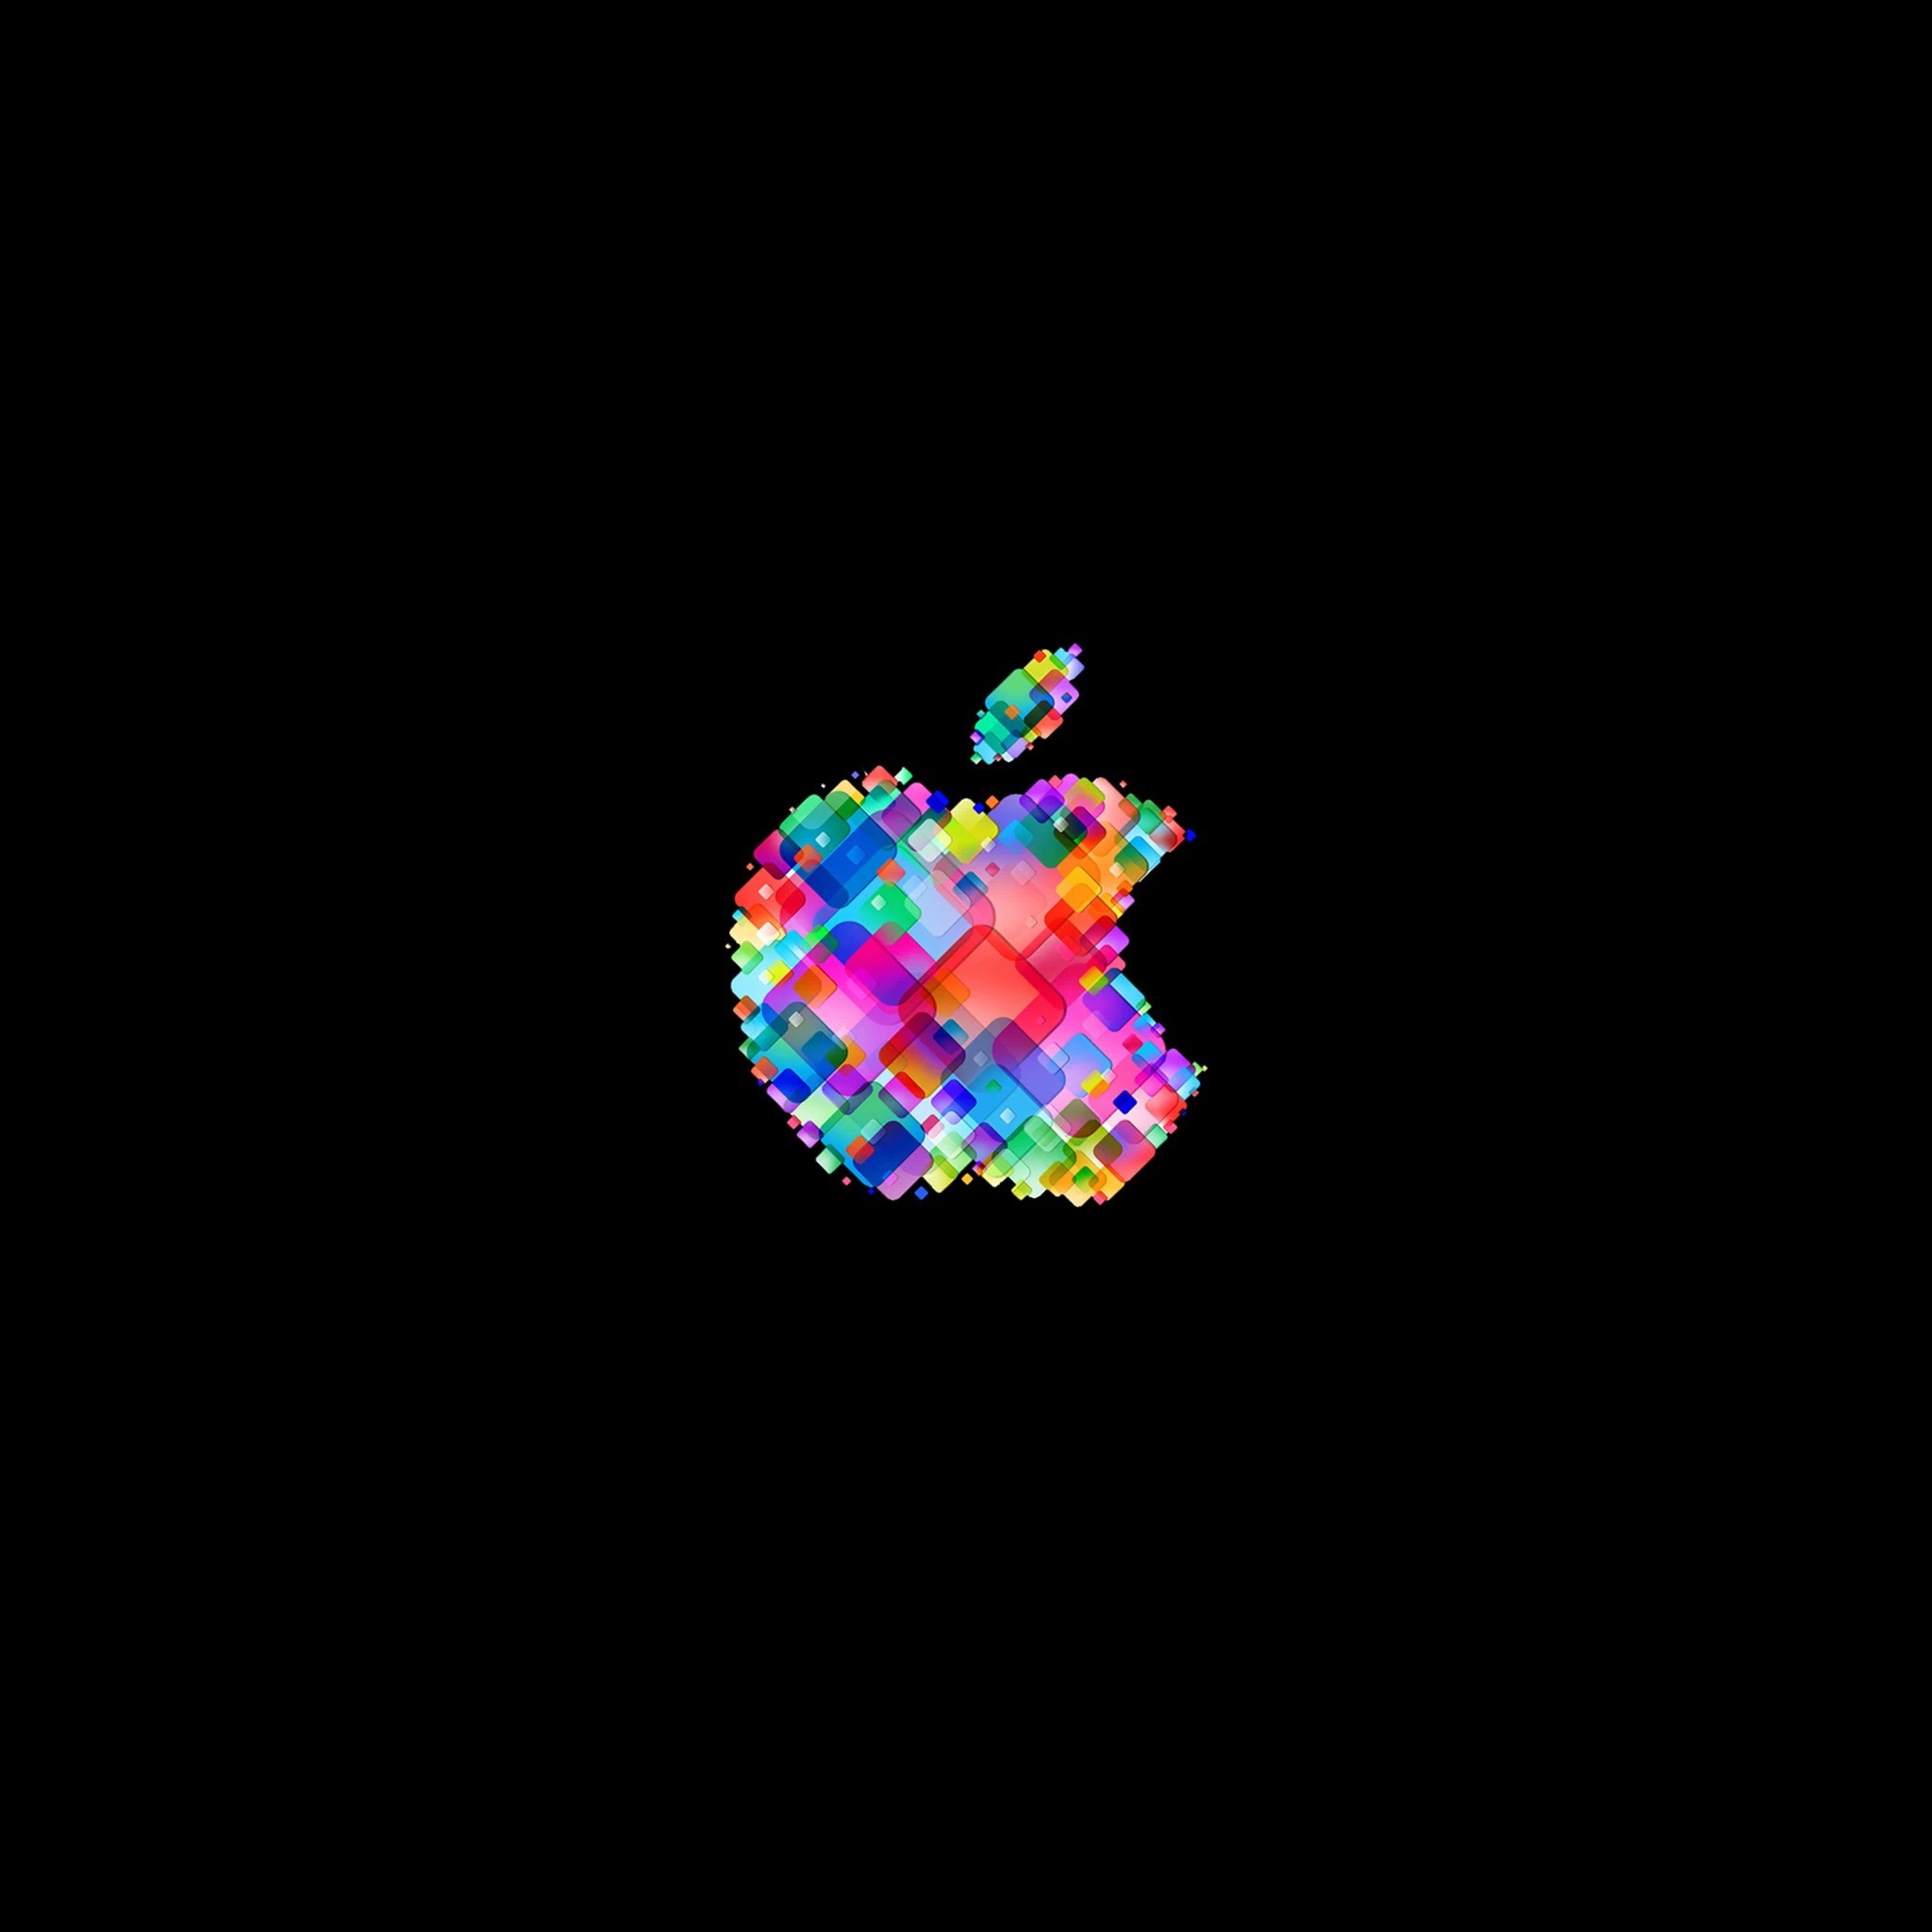 iPad Wallpapers Funky apple logo 3   Apple iPad iPad 2 iPad mini 2048x2048